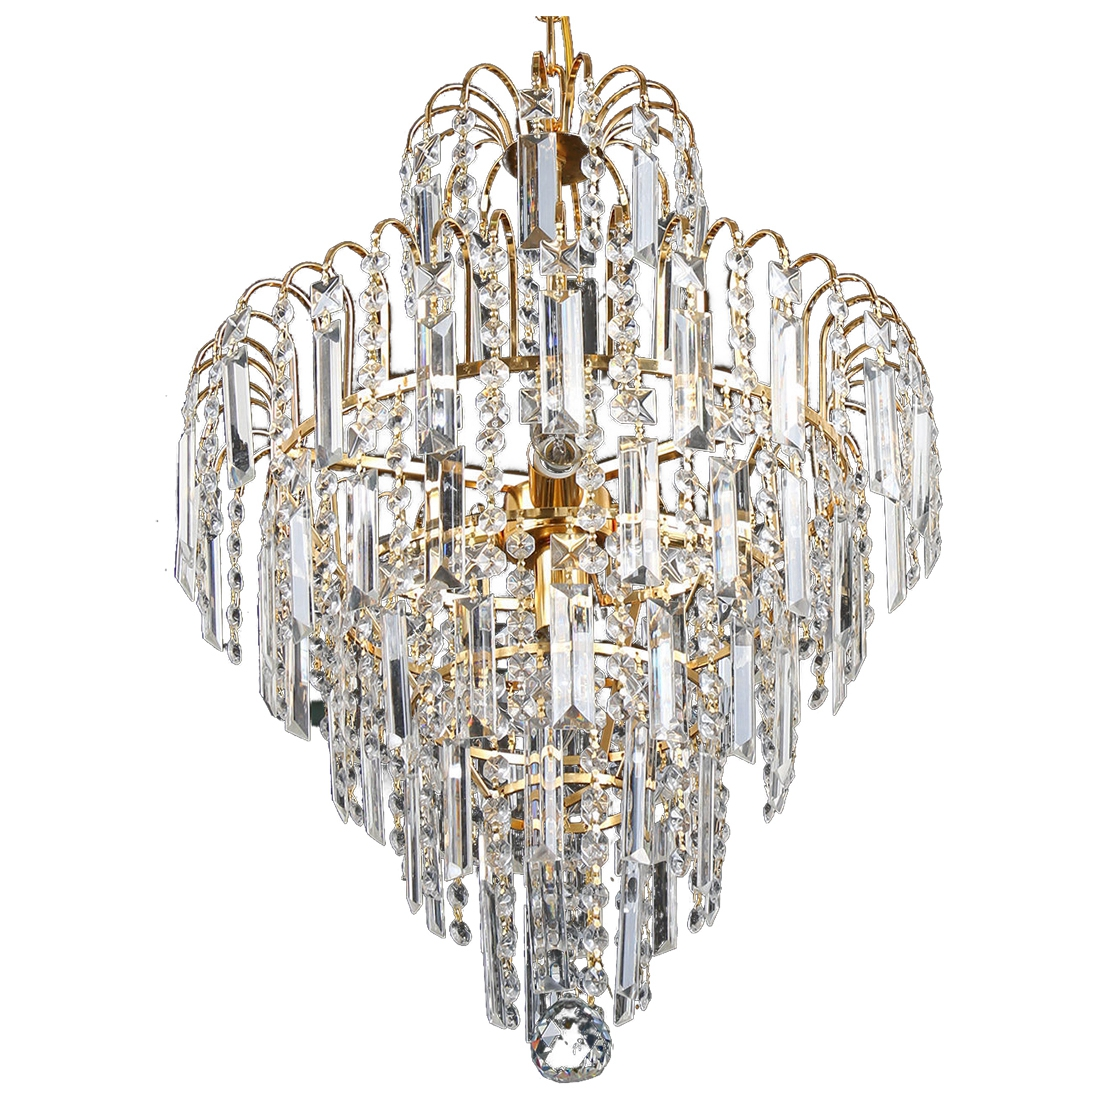 BIFI-Luxury Big Crystal Chandelier Modern Ceiling Light Lamp Pendant Lighting Fixture<br>